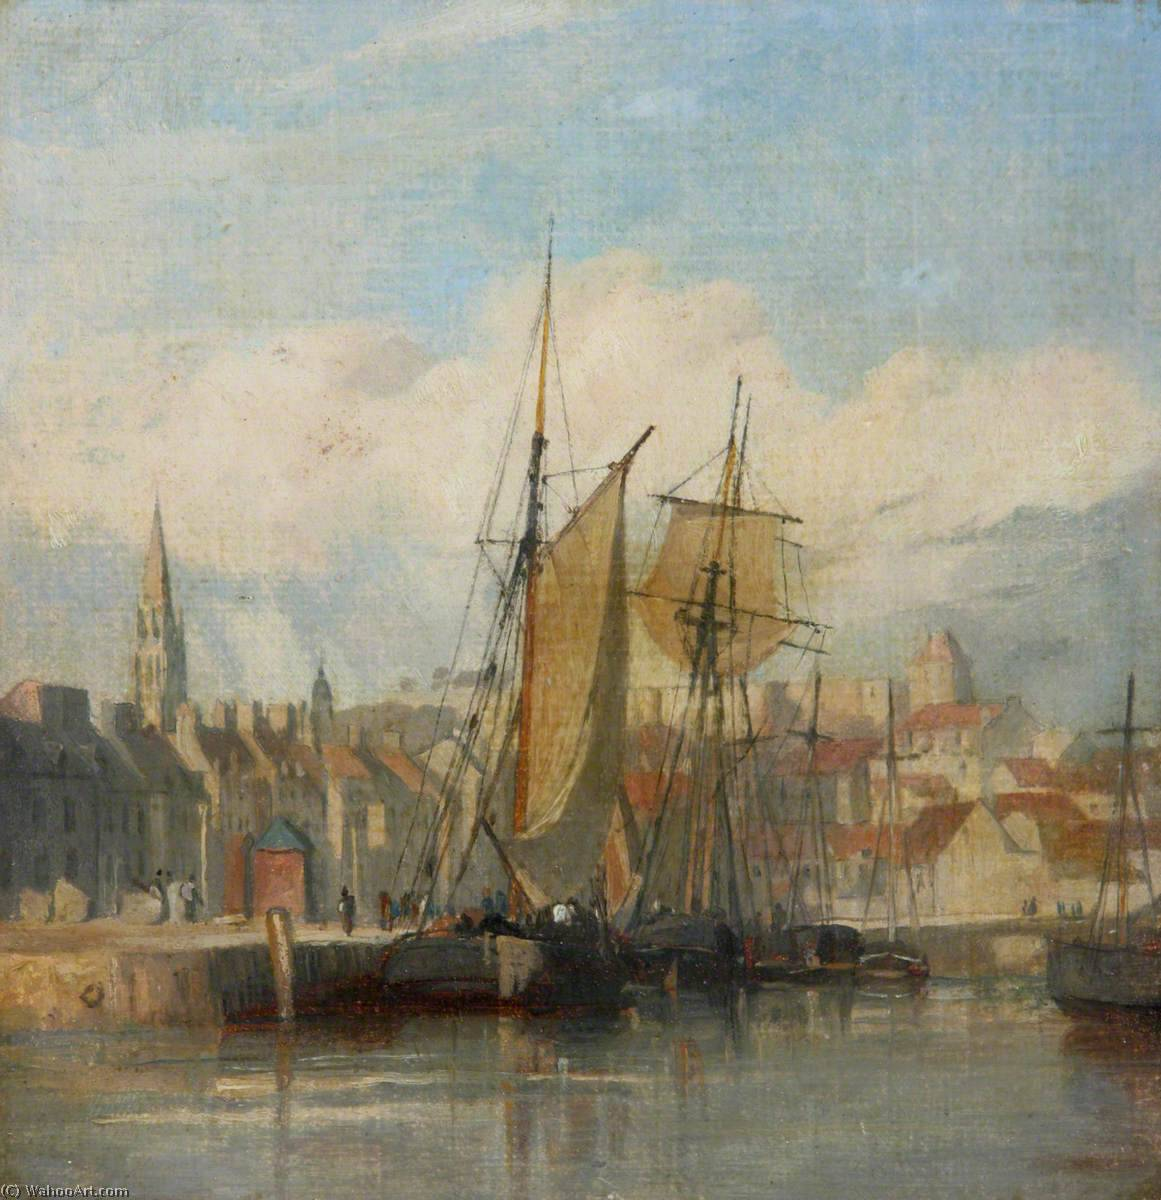 顺序 手工畫 : 迪耶普港 通过 Richard Parkes Bonington (1802-1828, United Kingdom) | WahooArt.com